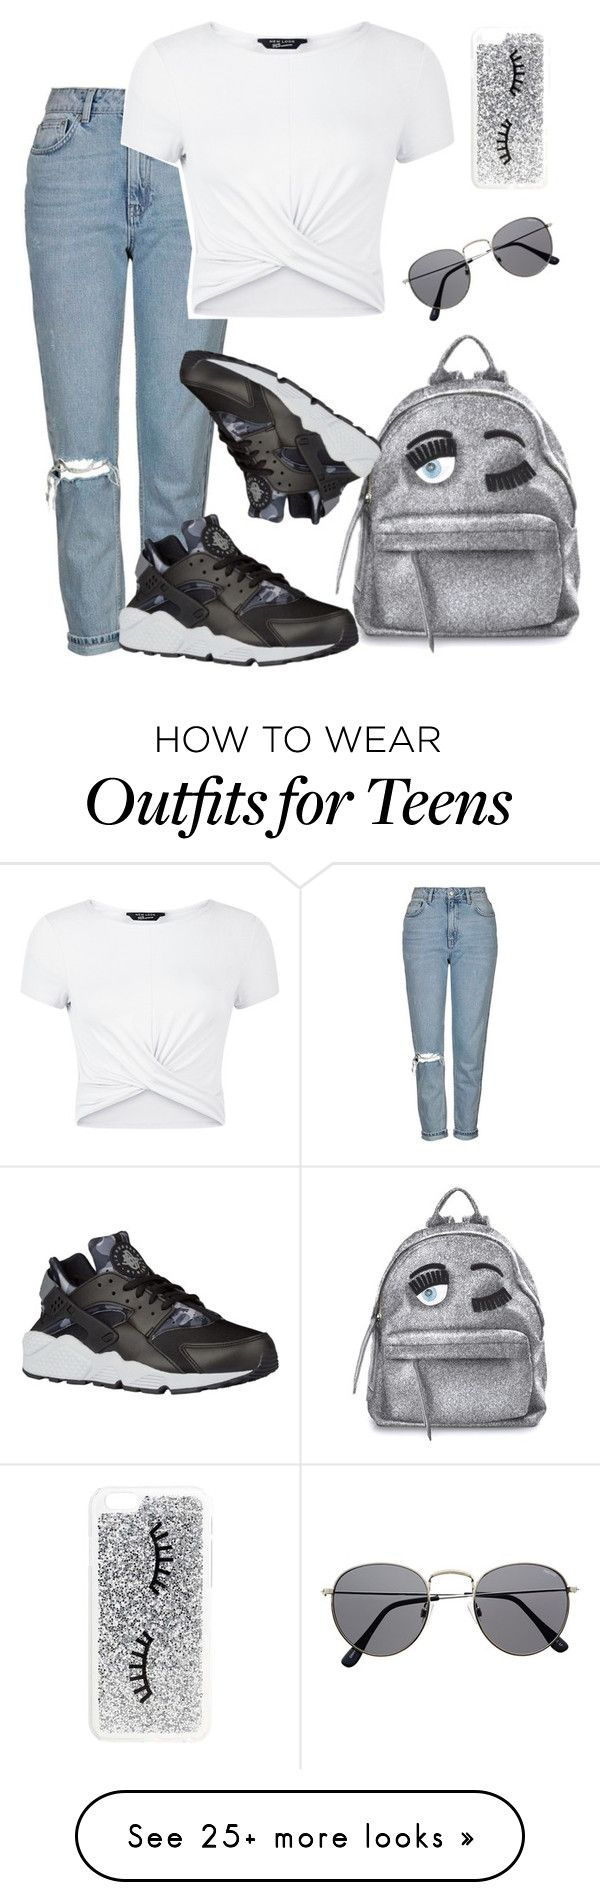 """"" by kaaymvrie on Polyvore featuring Topshop, Chiara Ferragni, New Look, NIKE and Miss Selfridge"